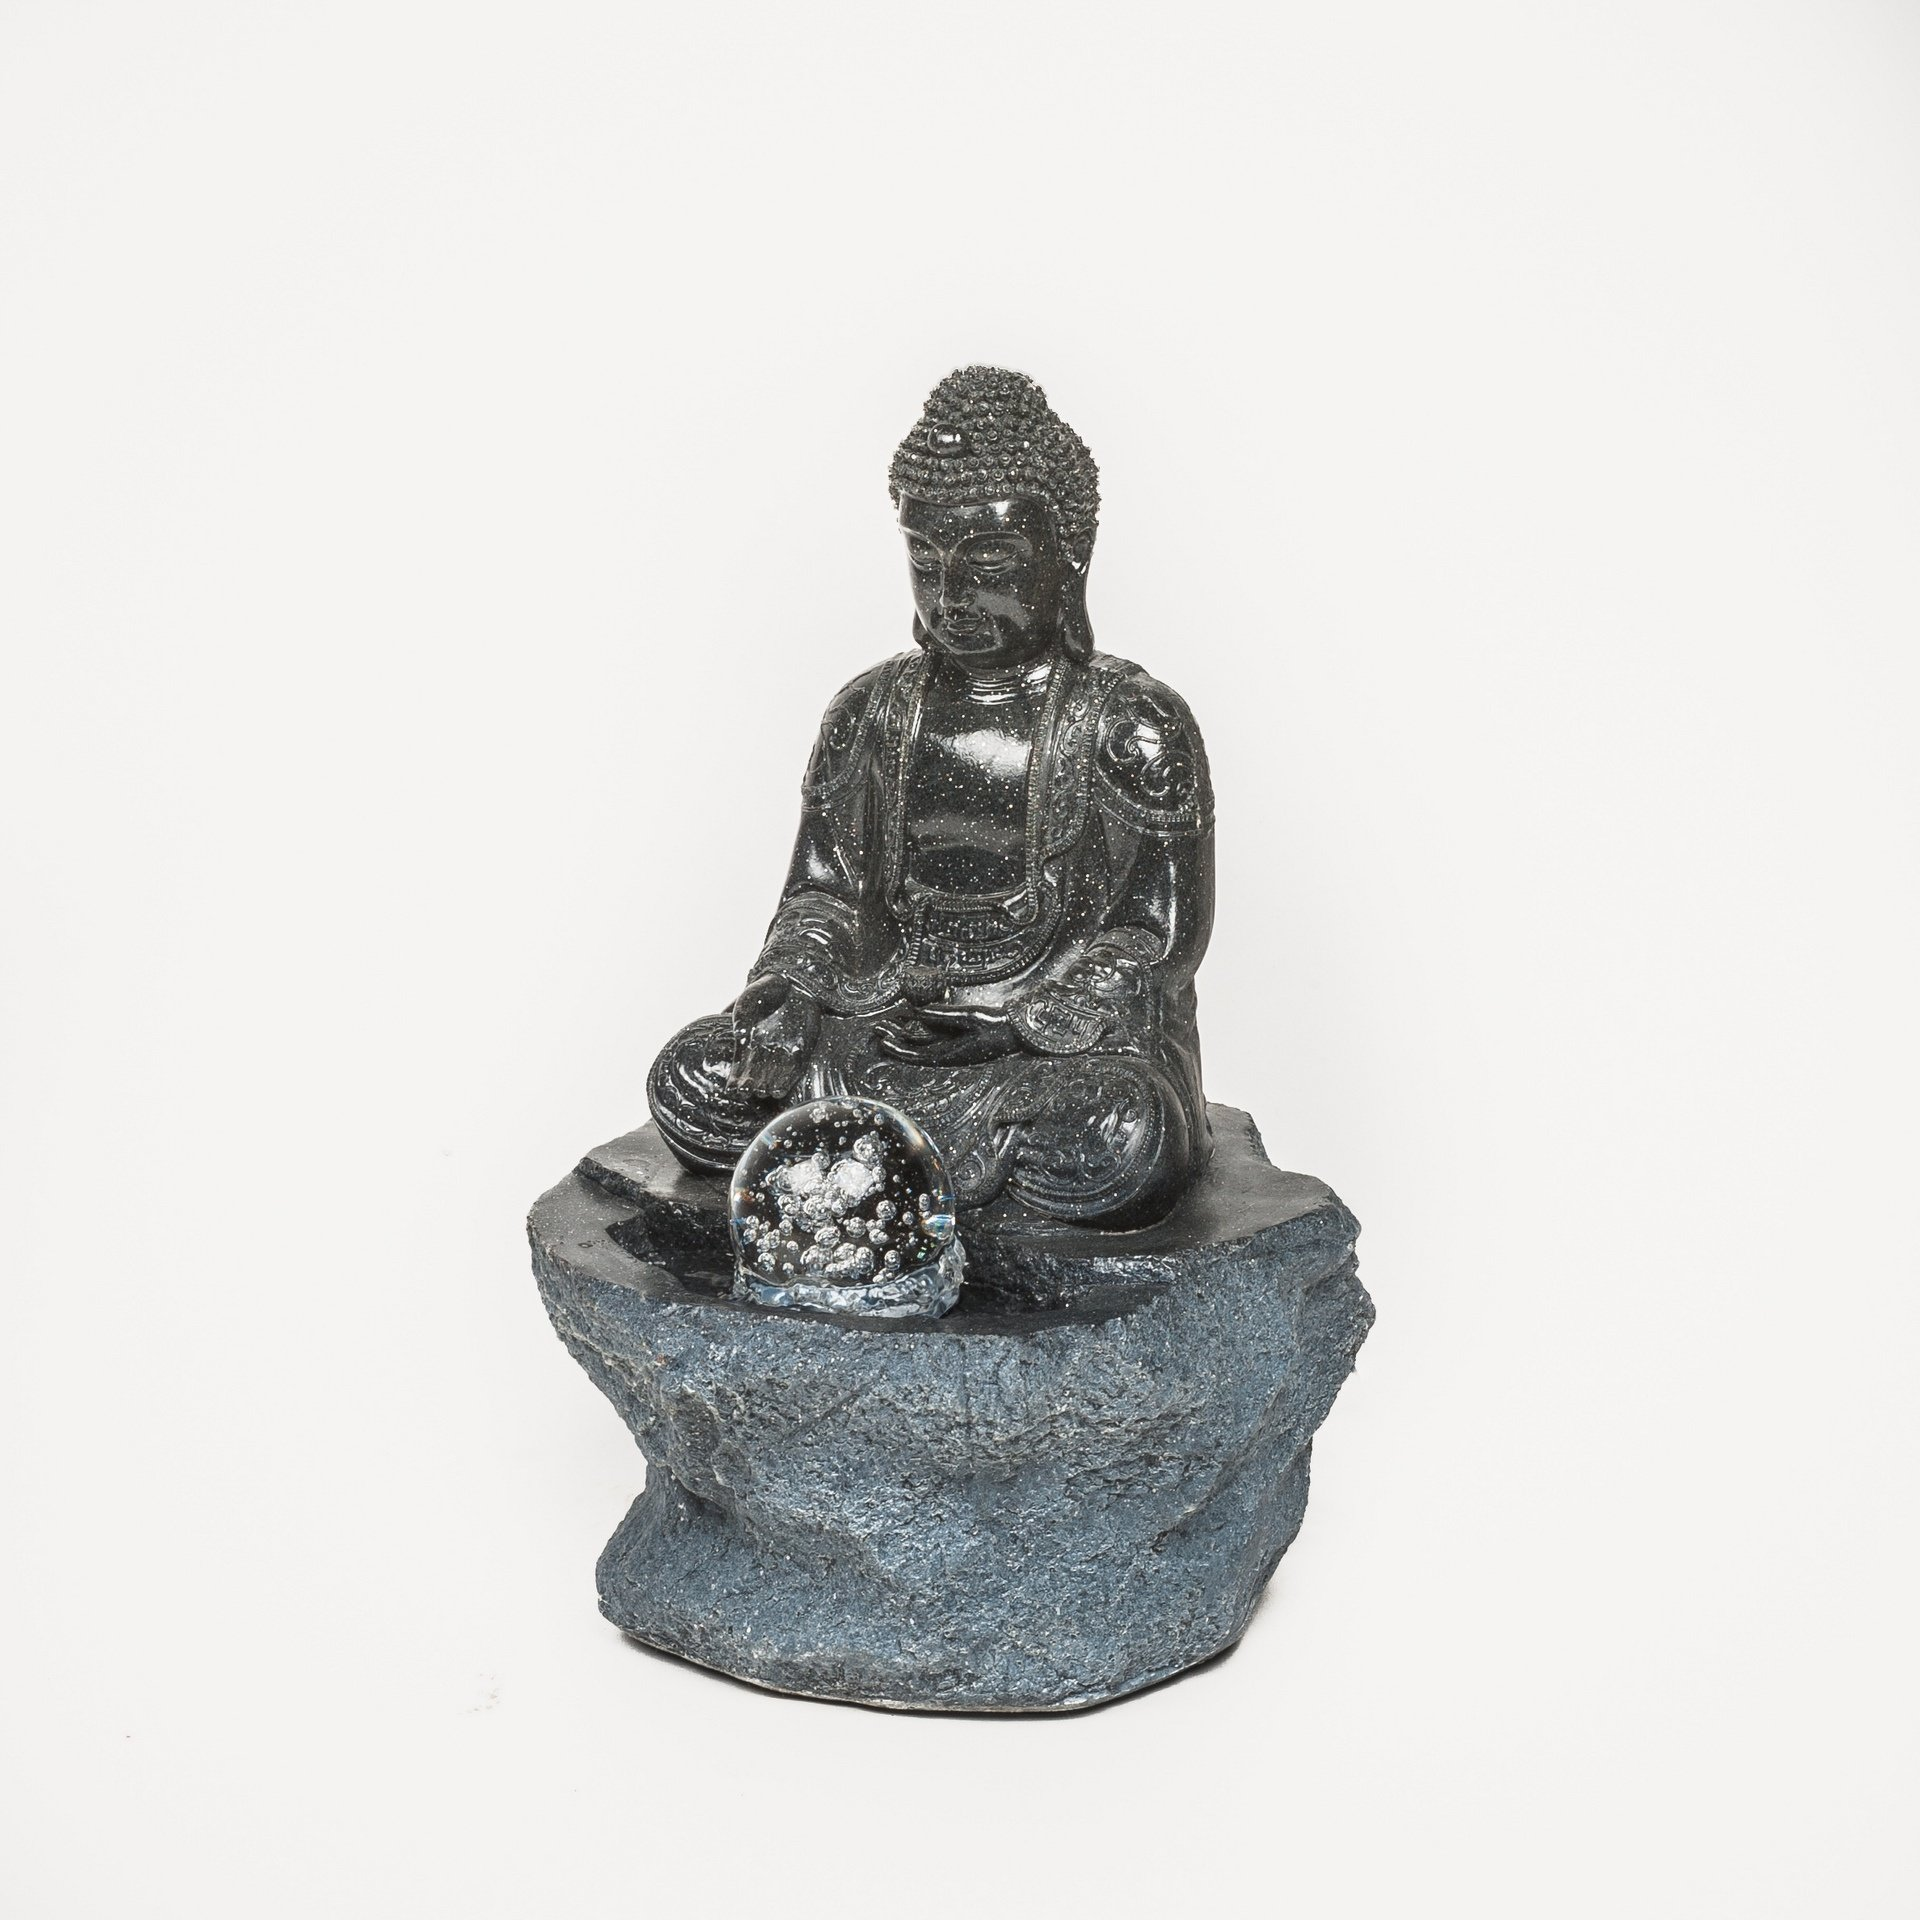 Small Black Buddha with Ball DW10105-1